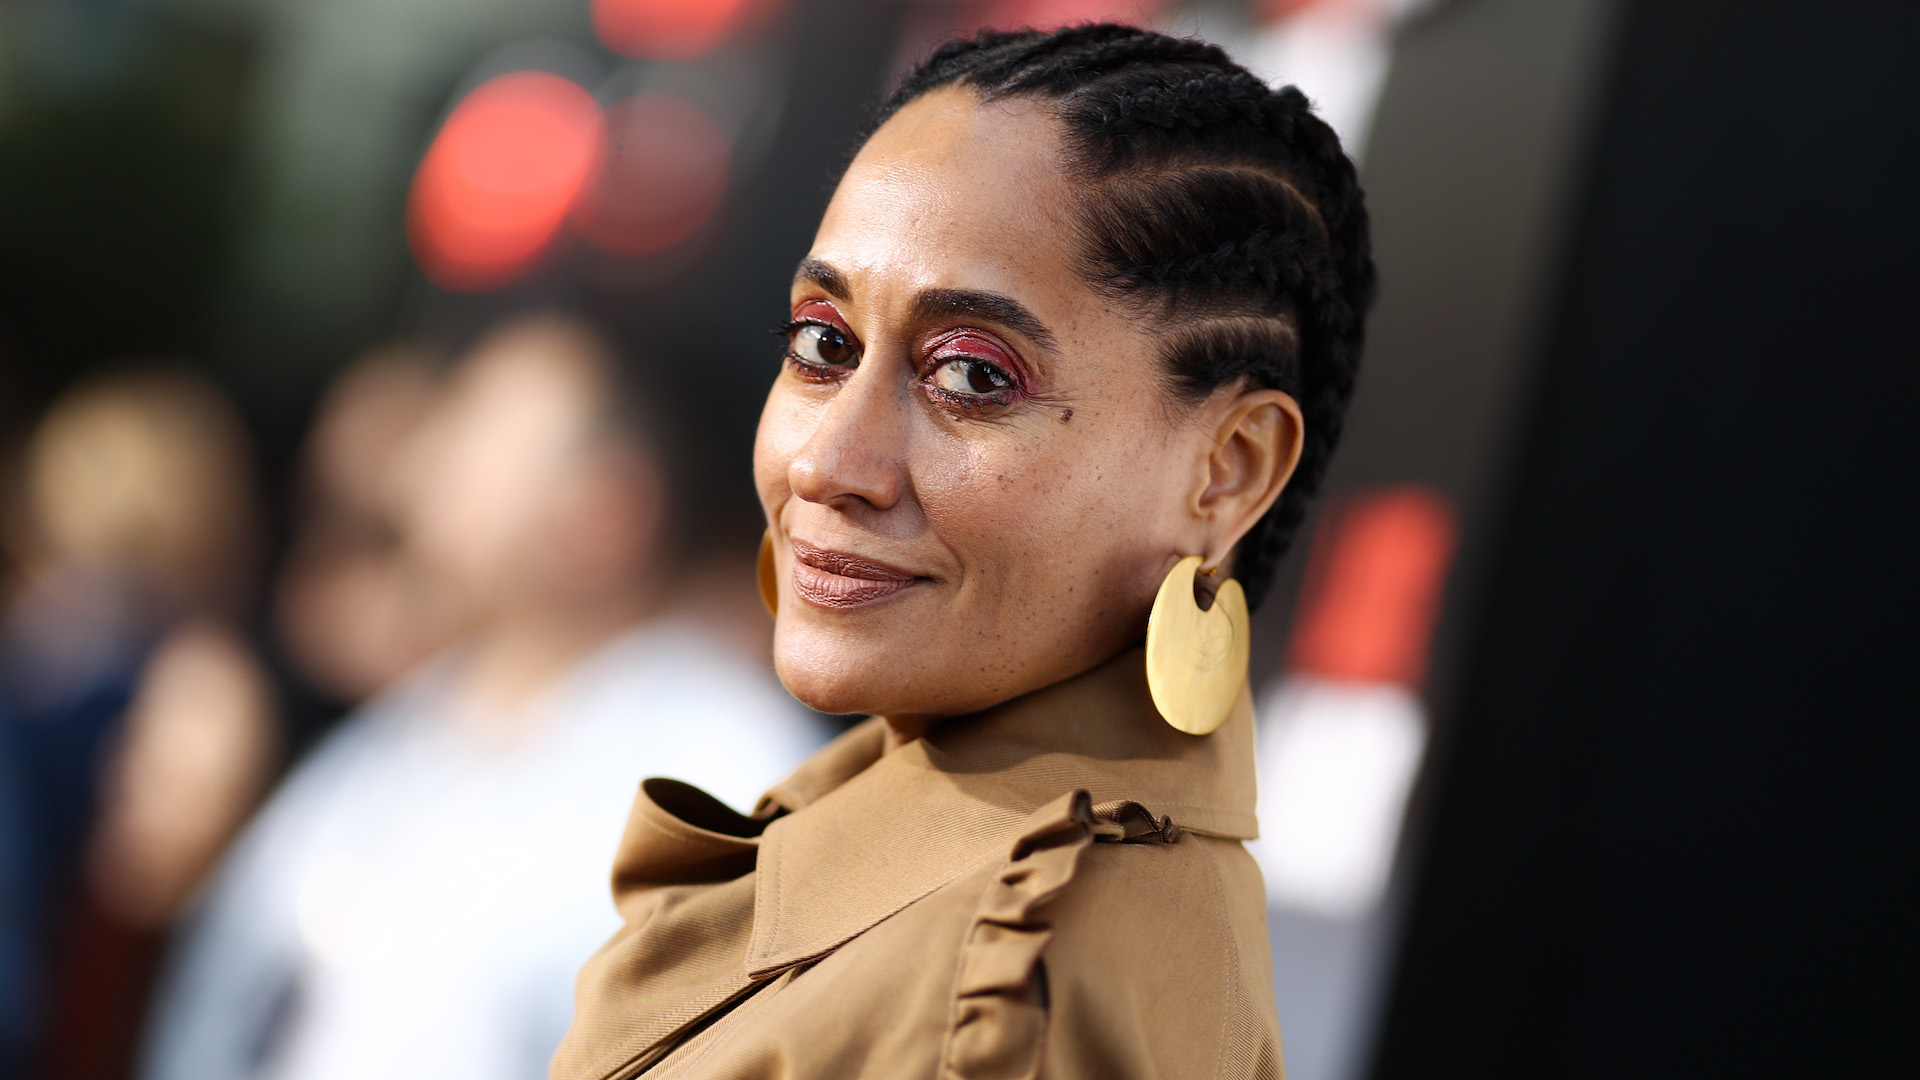 Tracee Ellis Ross Is Like a Hot Disco Ball in This All-Sequin Get-Up